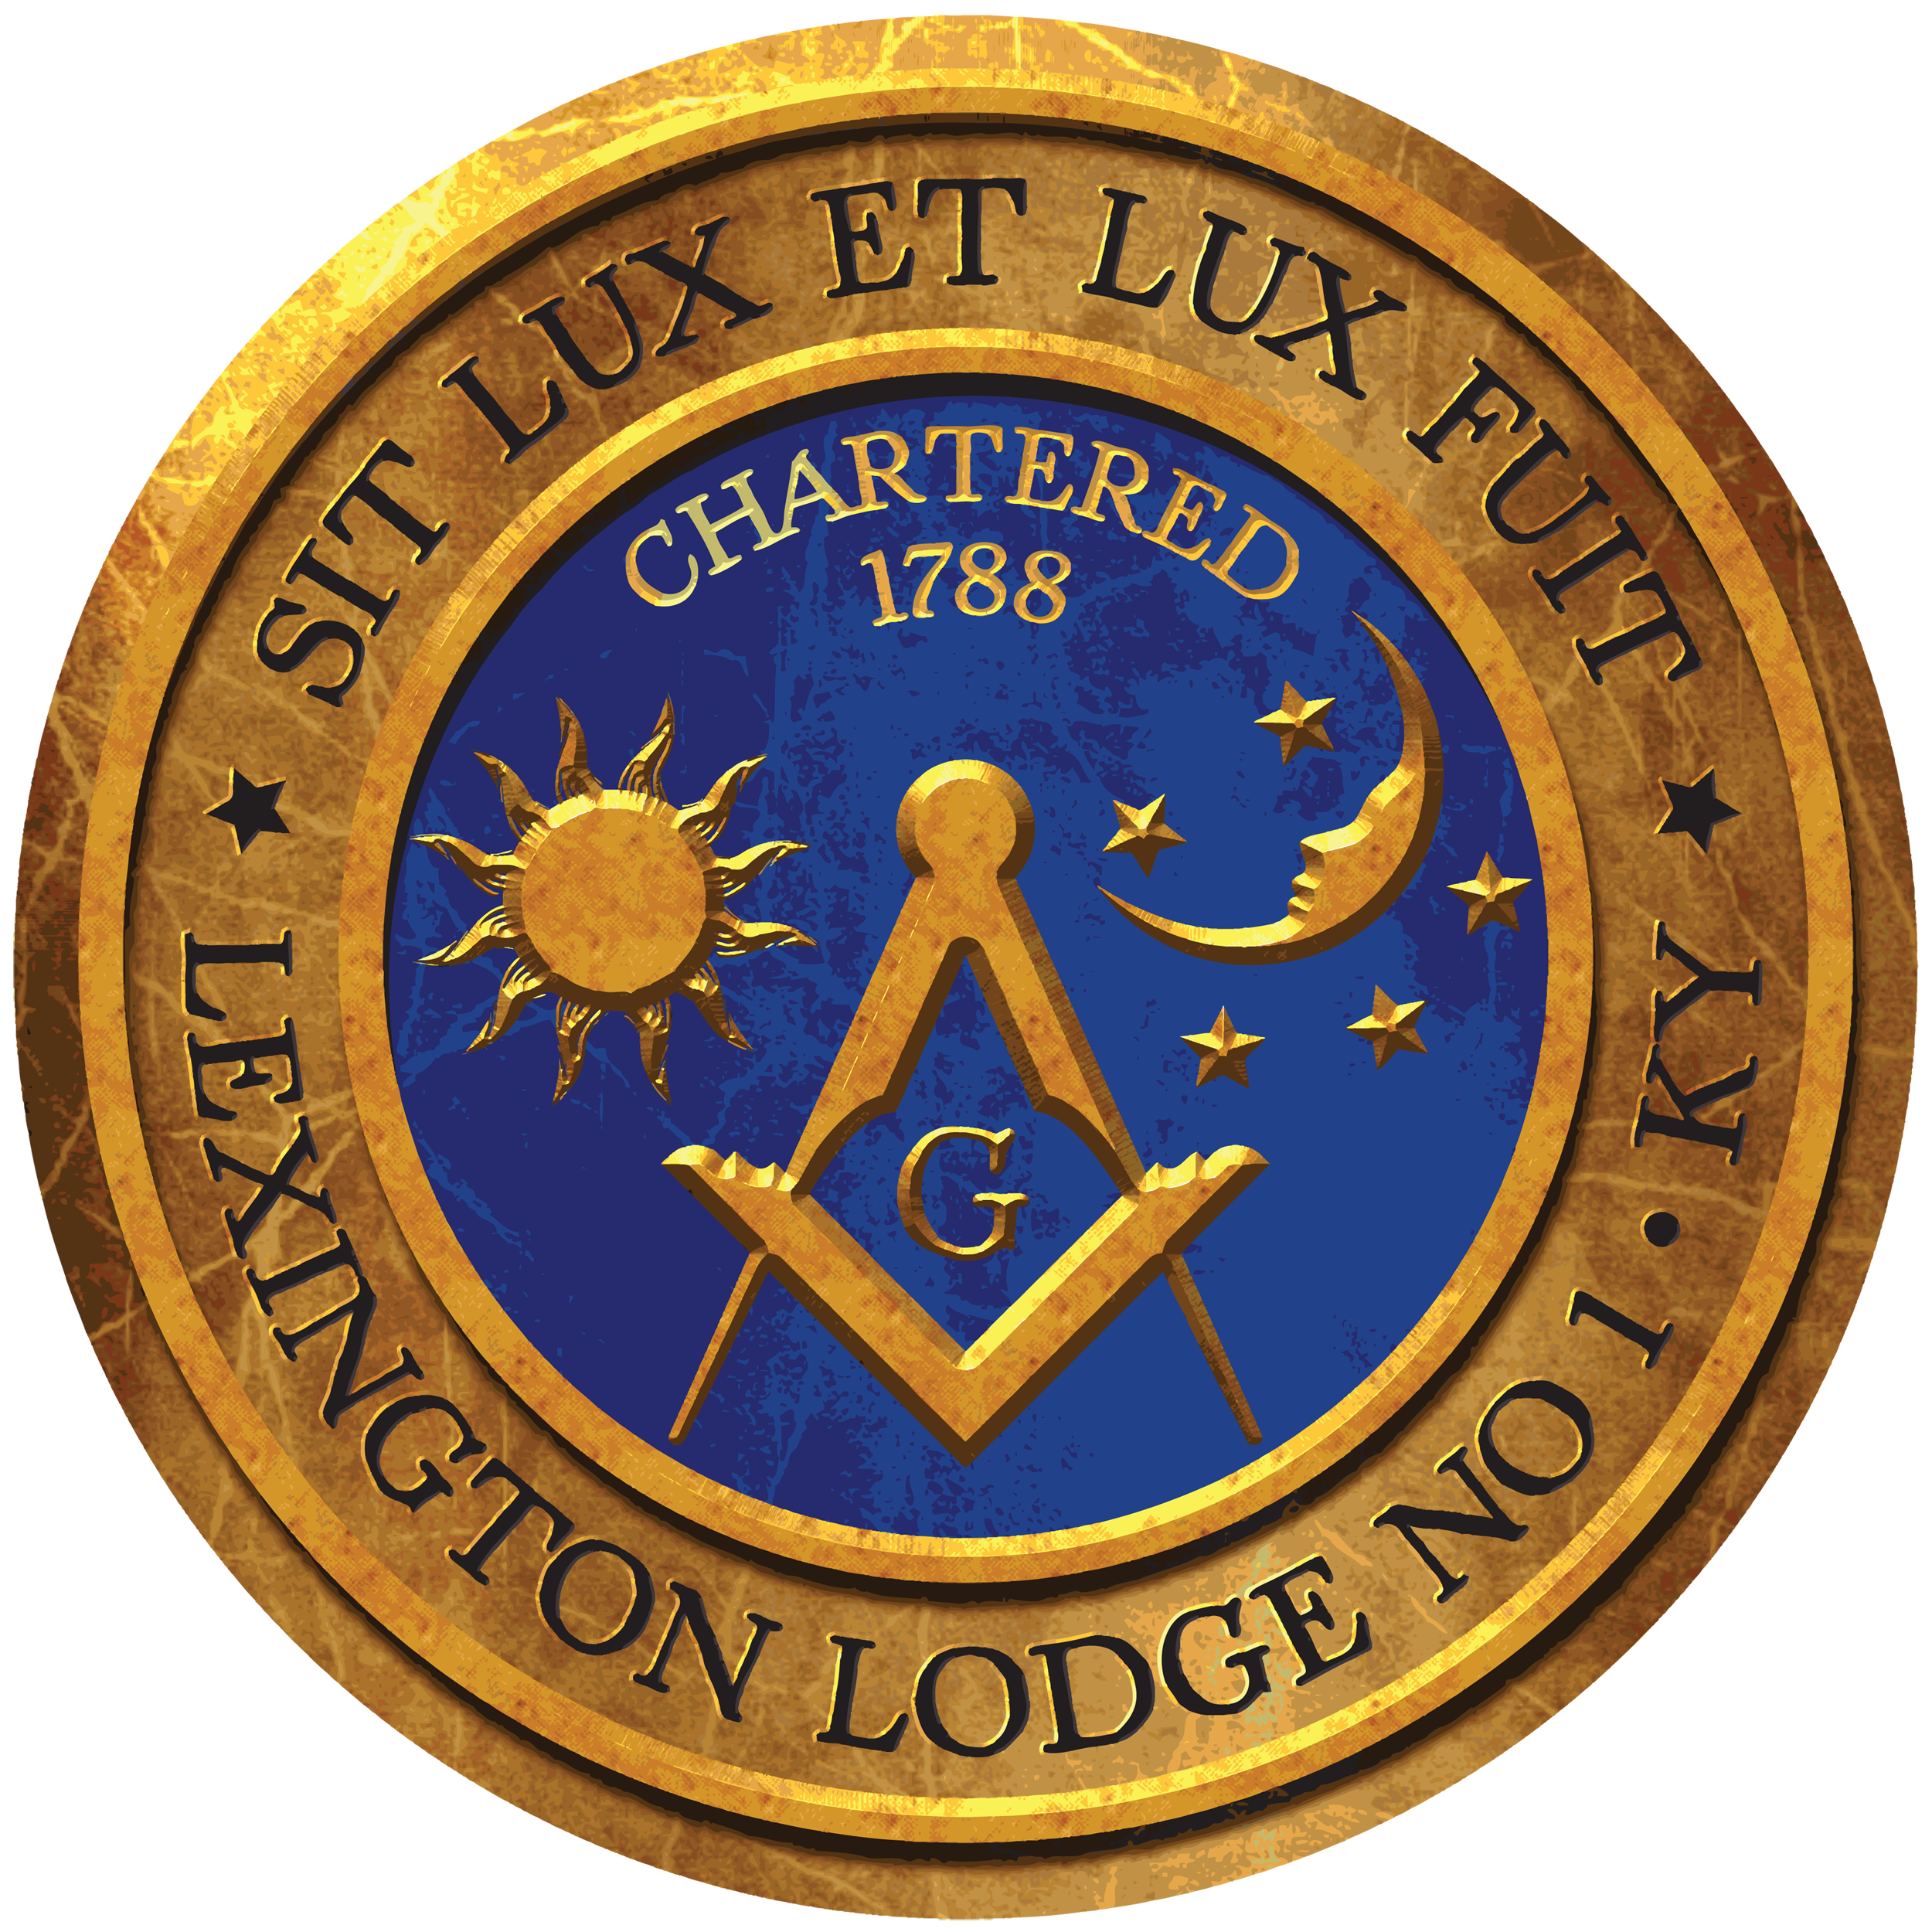 Lexington Masonic Lodge No. 1 Lexington, Kentucky | Lexington Lodge 1 F.&.A.M | Lexington, Kentucky Freemason